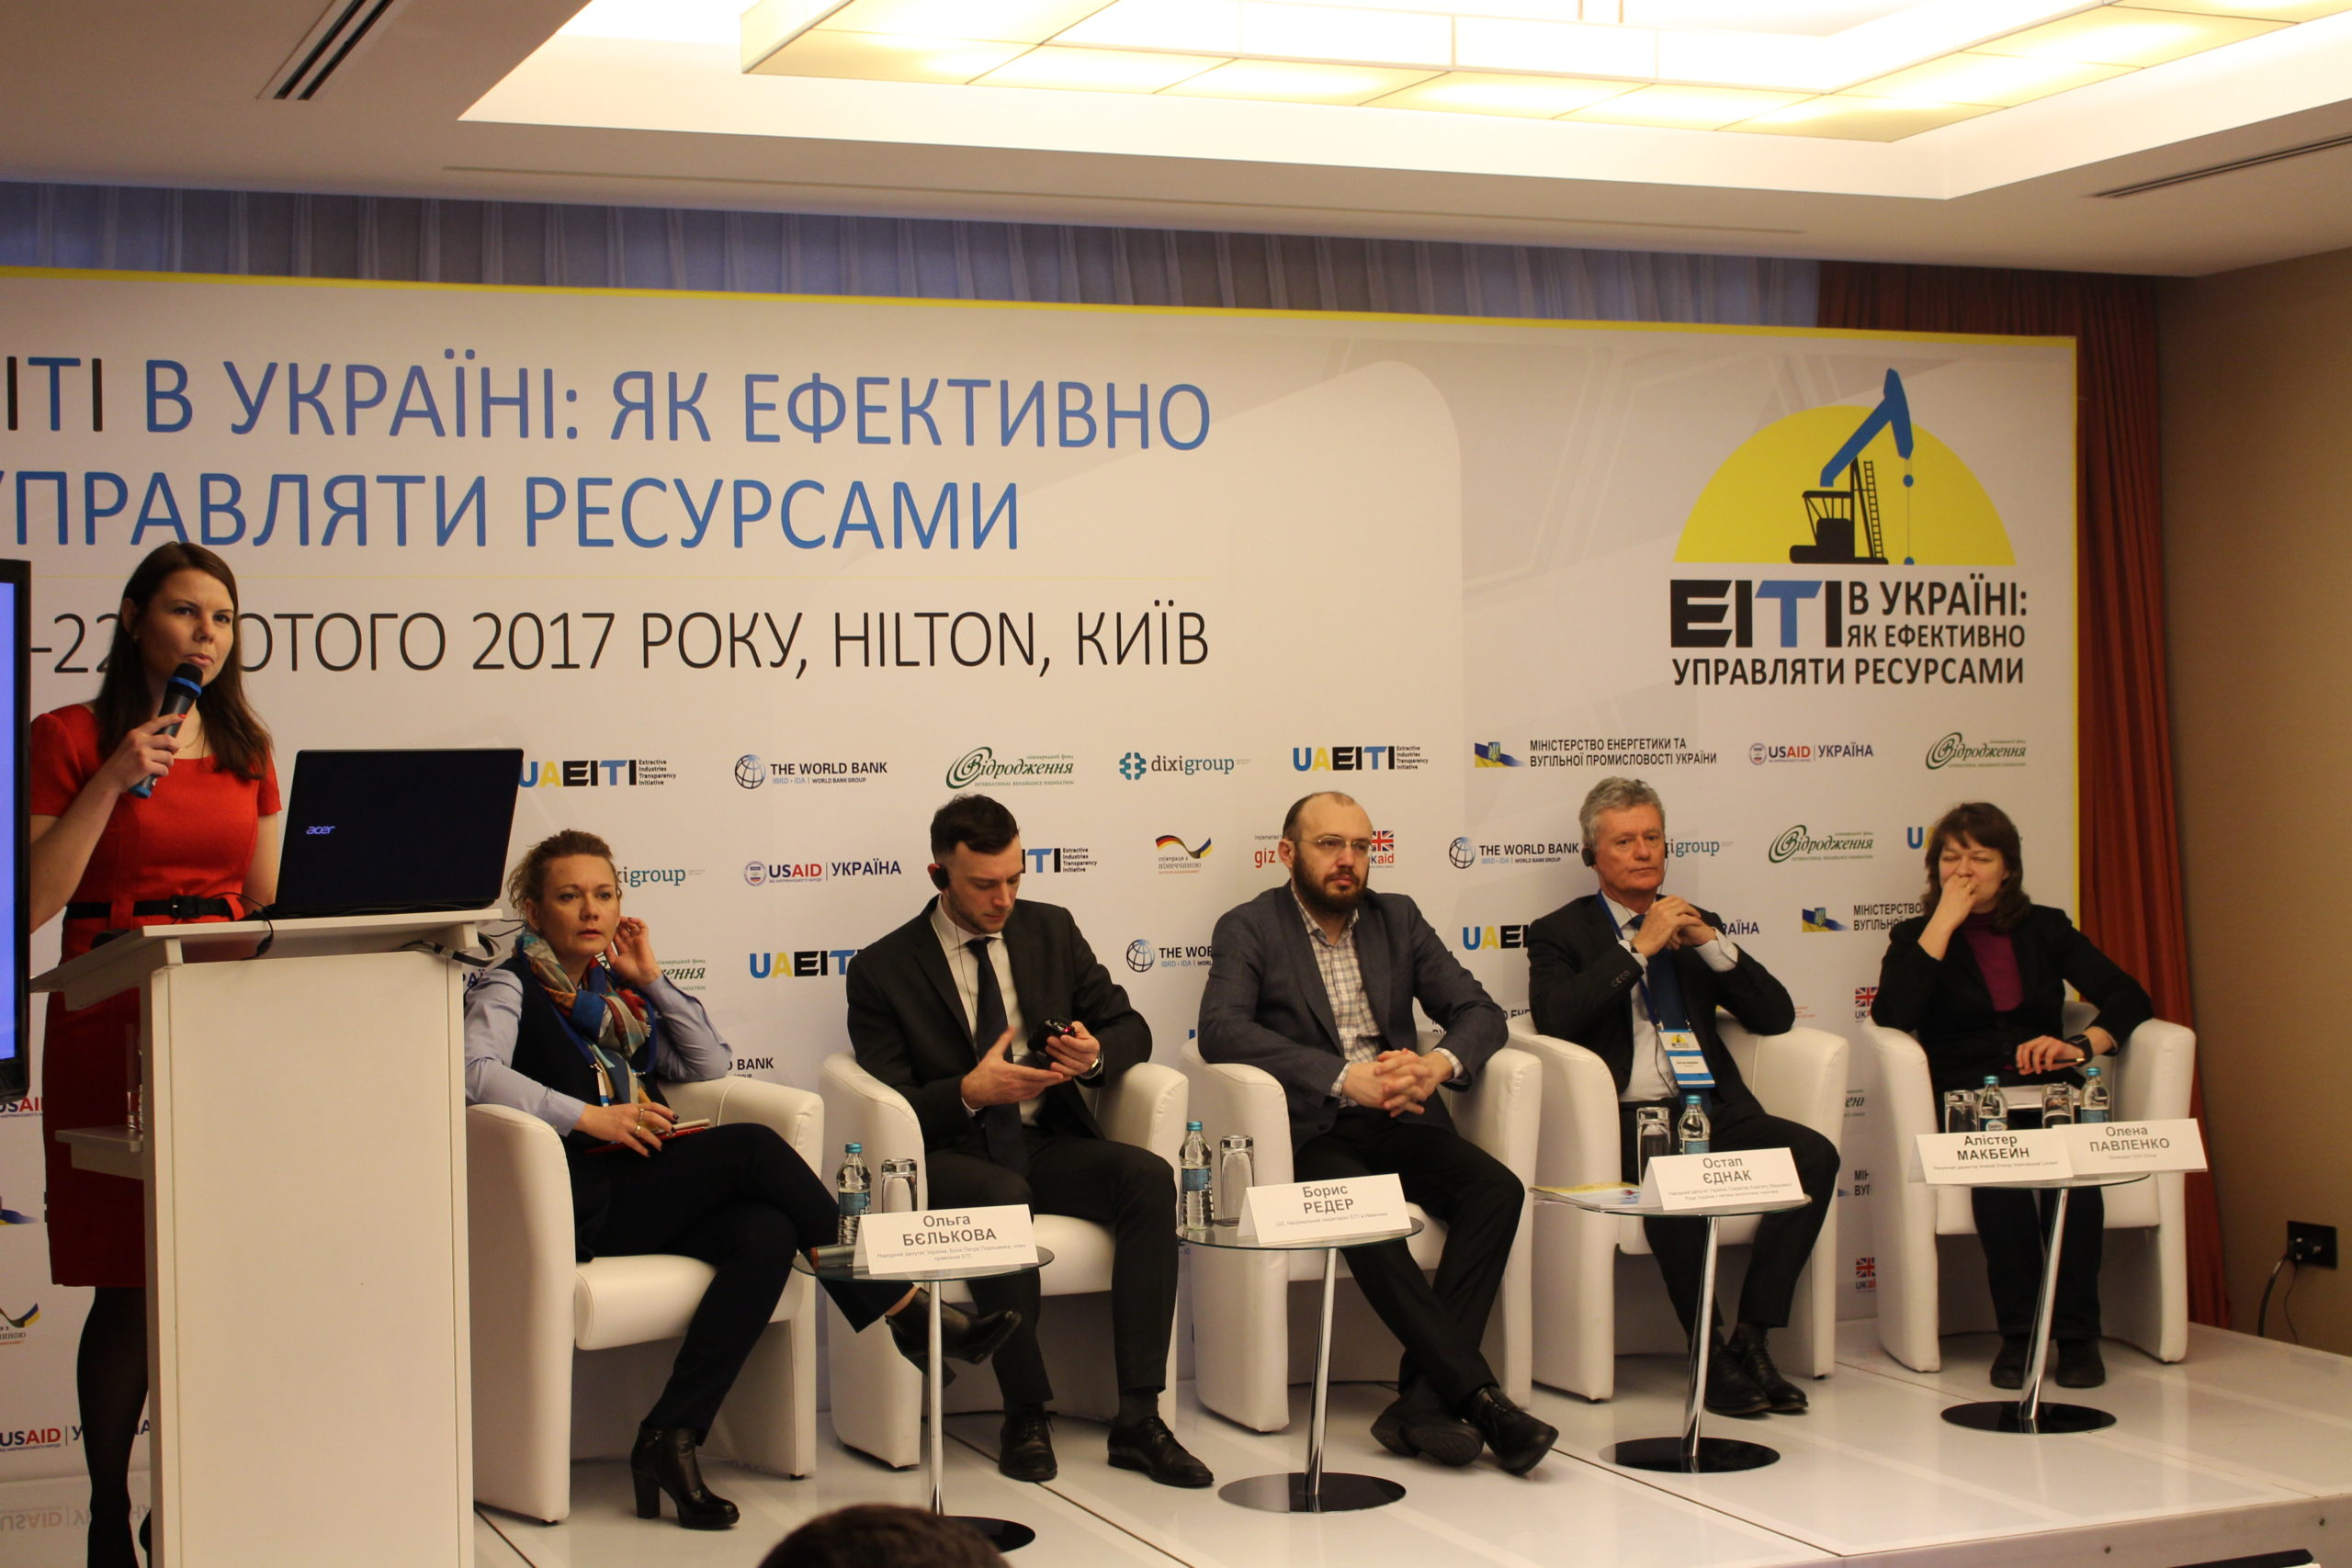 EITI in Ukraine: How to Manage Resources Efficiently. Day 2